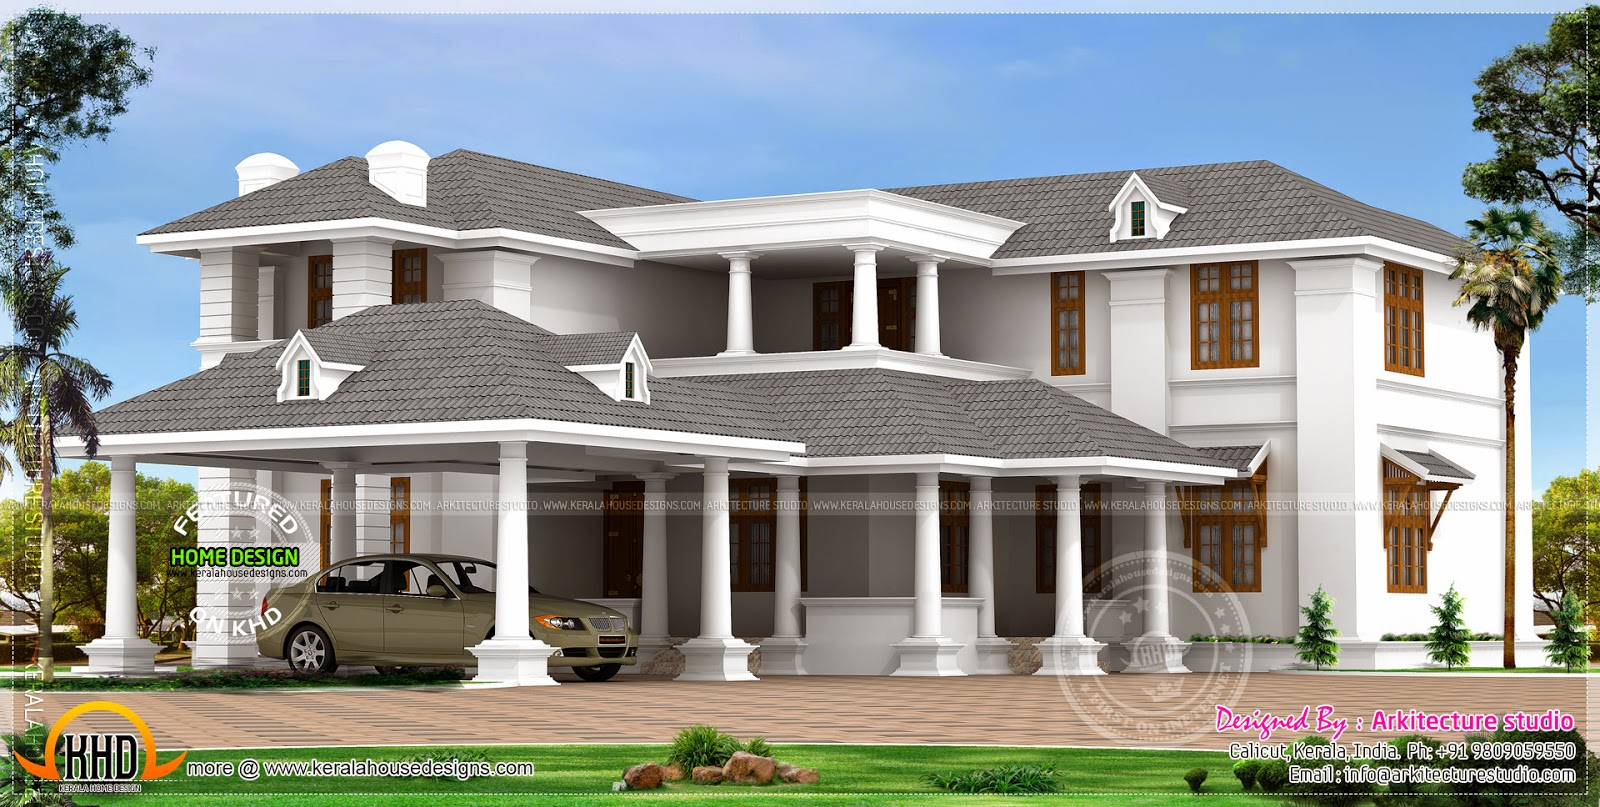 Big luxury home design - Kerala home design and floor plans